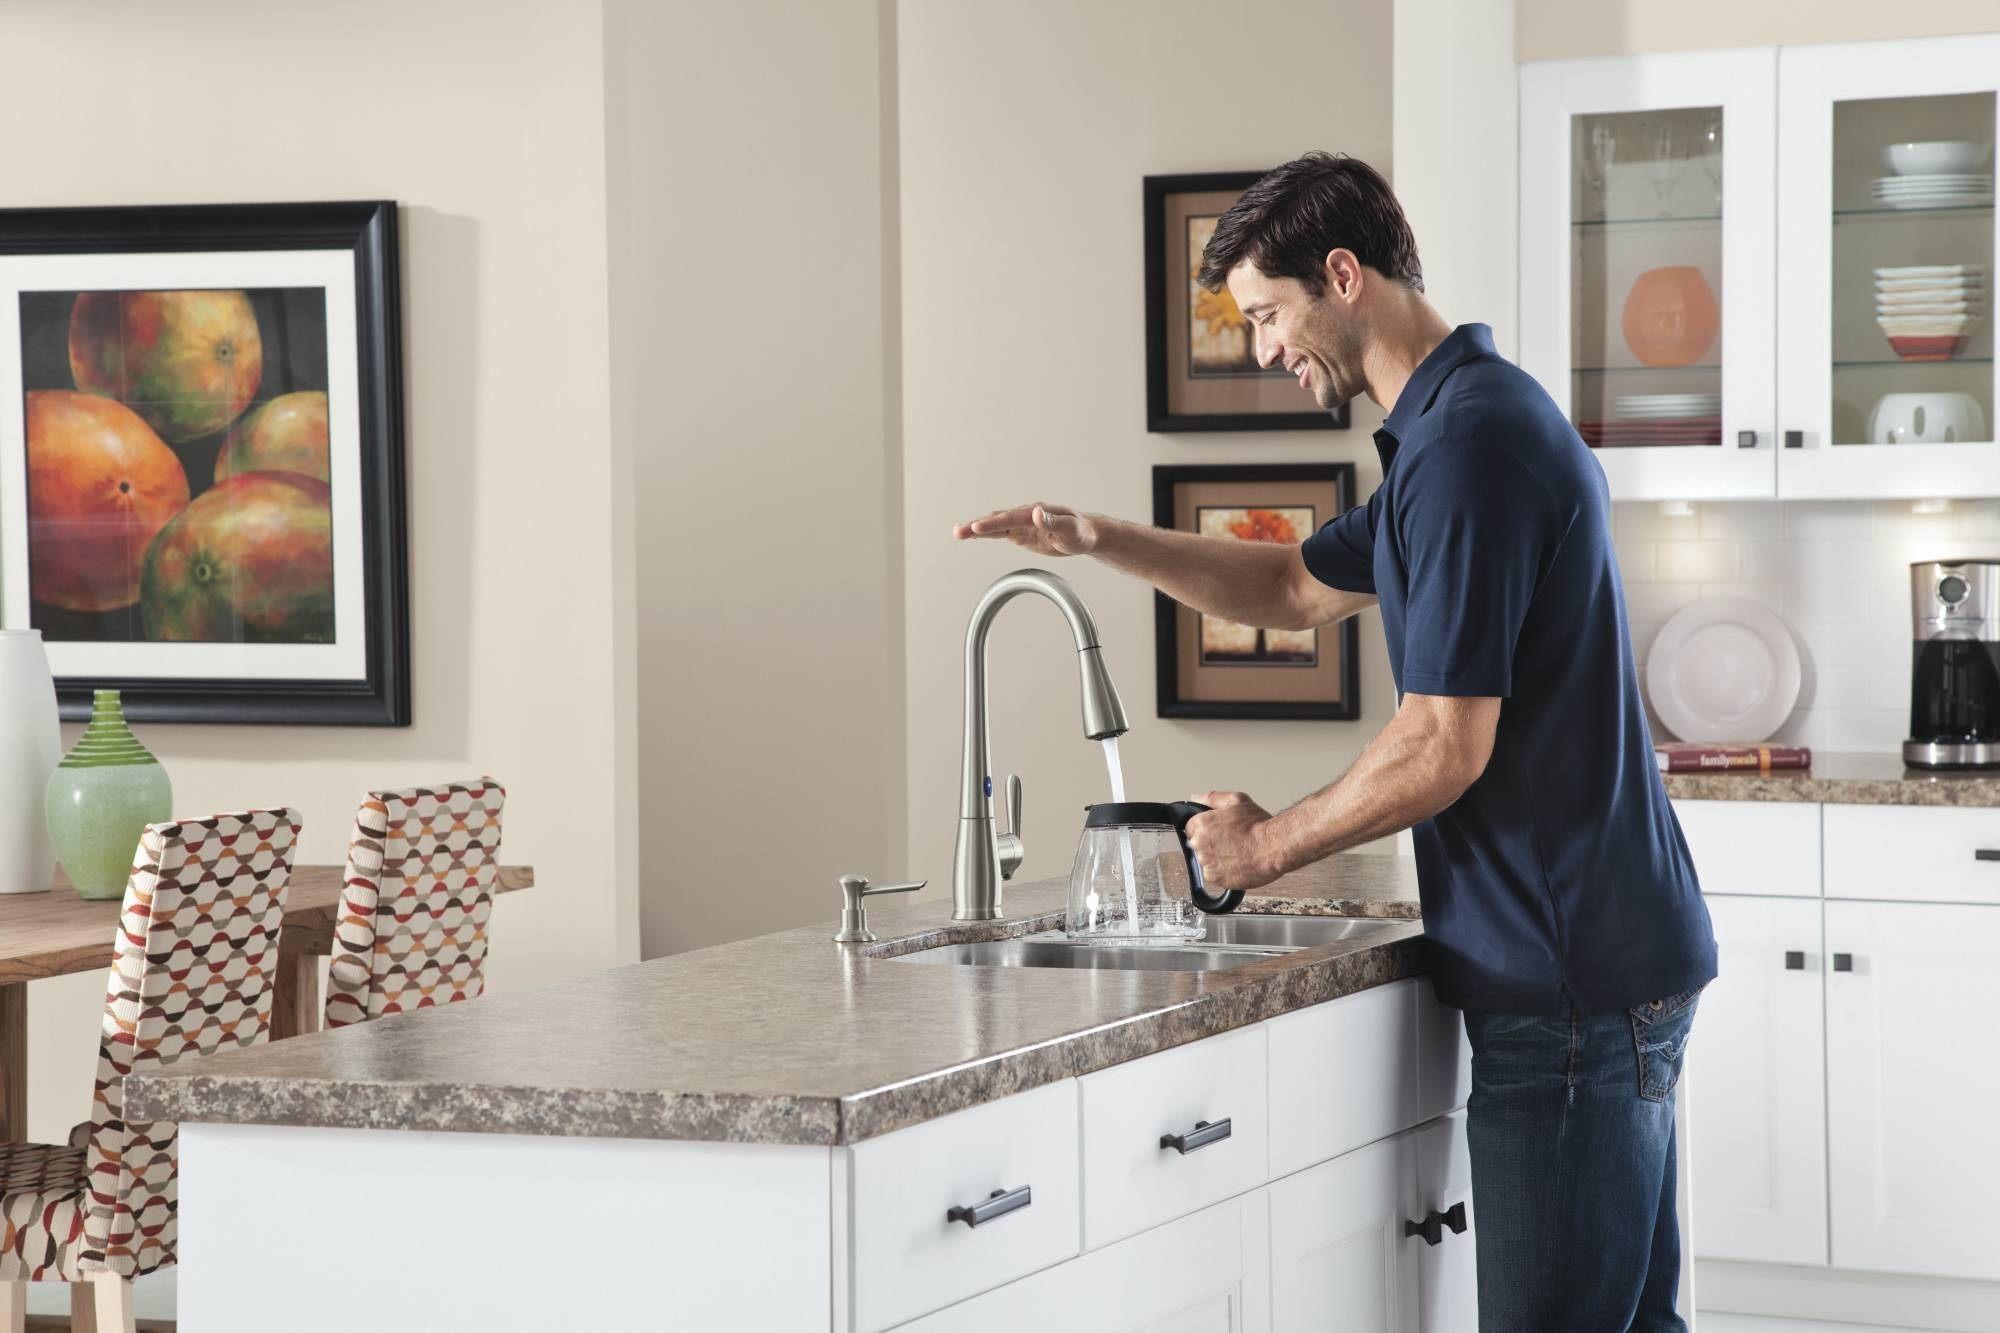 You can learn to prep food with an efficient new tool -- Moen's MotionSense faucets.